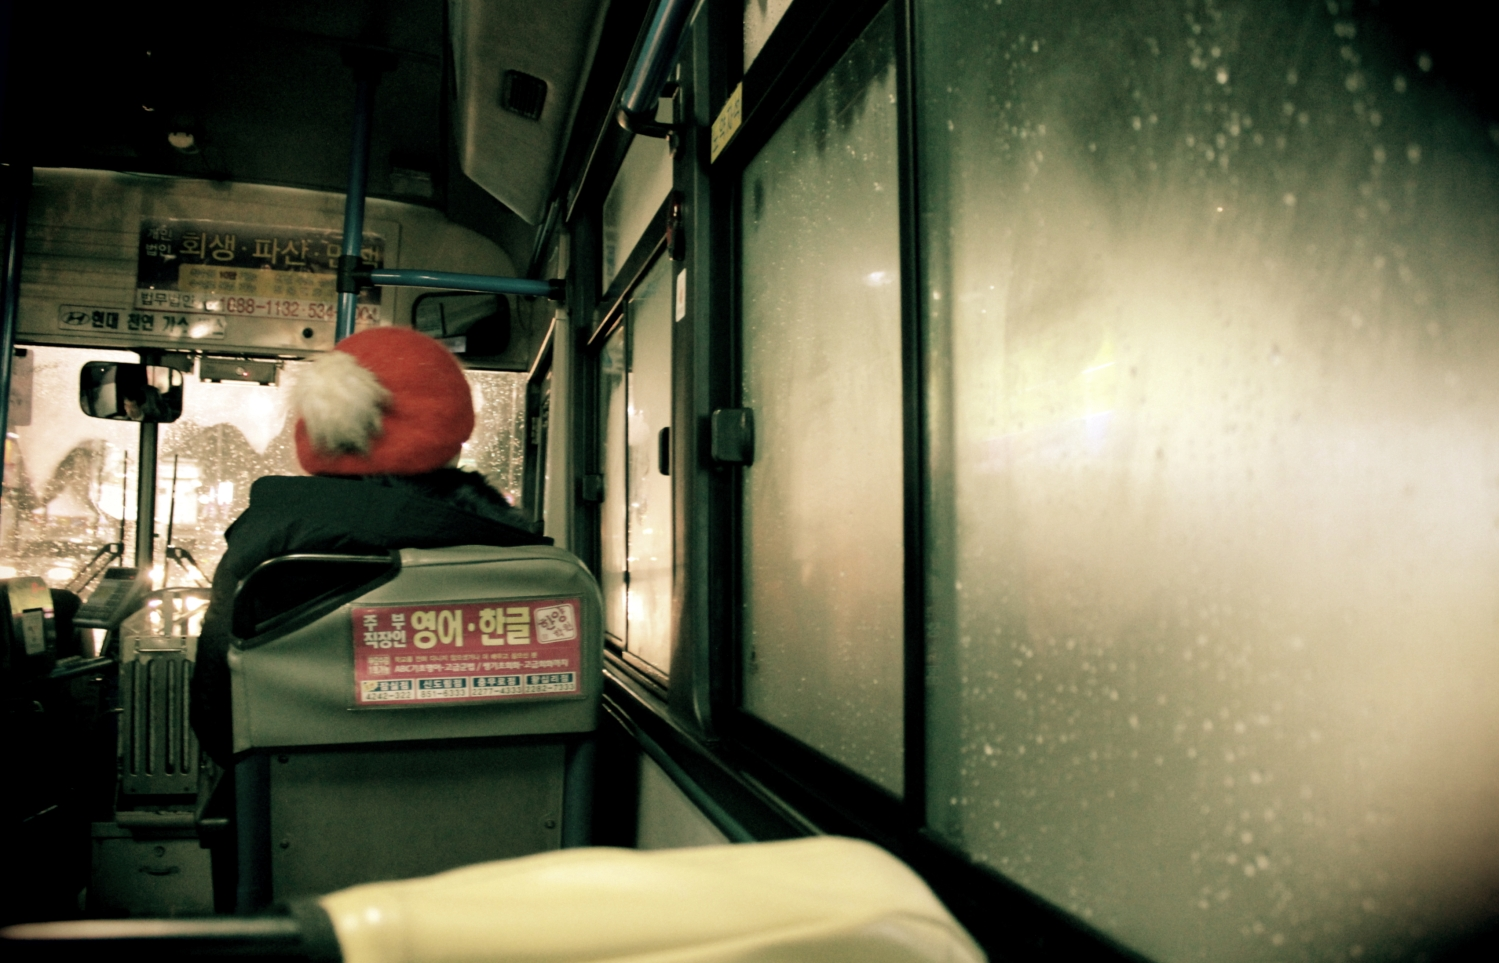 Bus journey on a rainy night in Seoul, South Korea